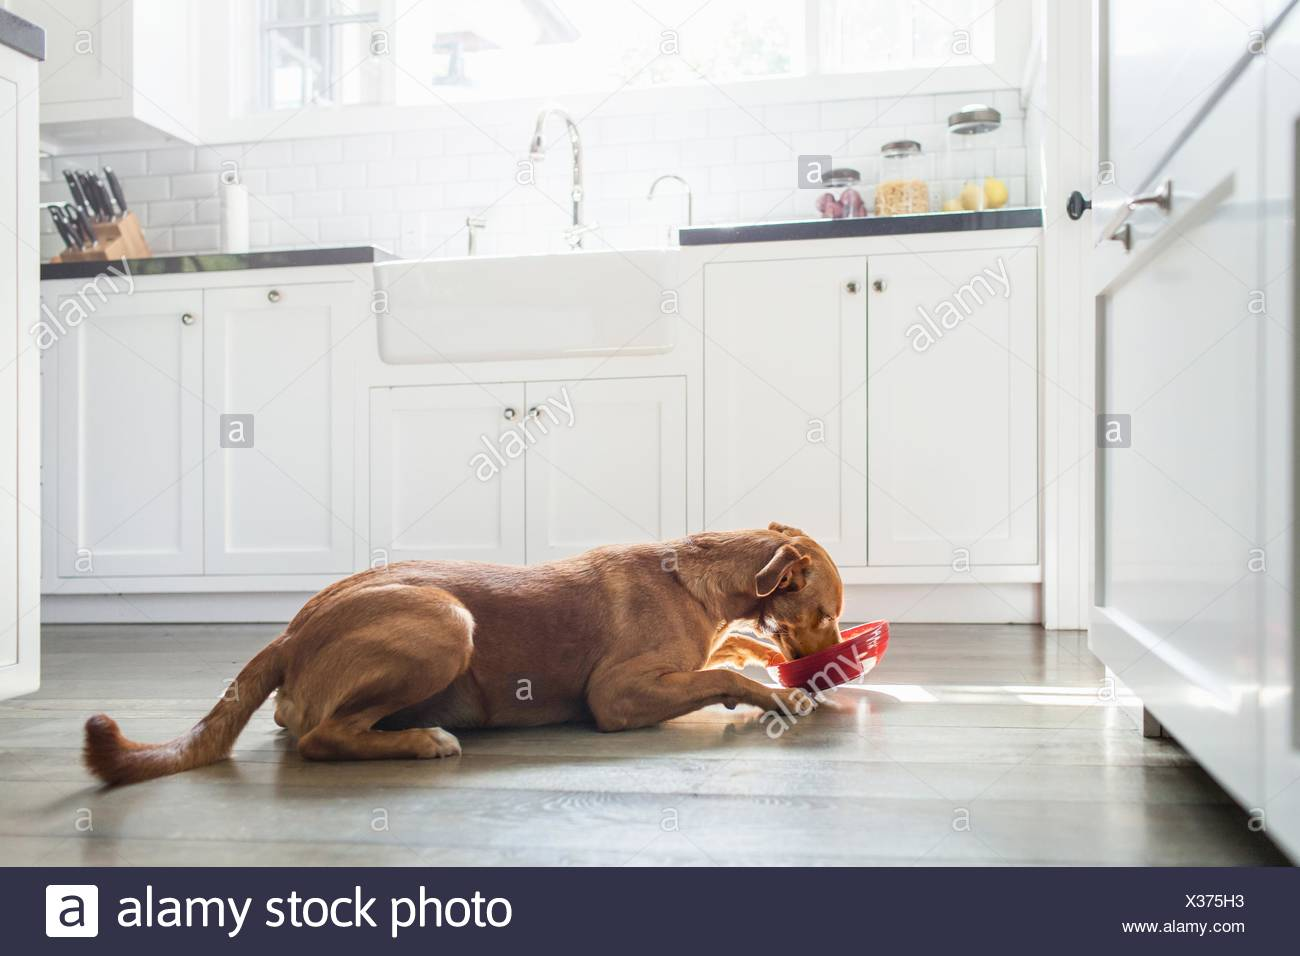 Side view of tan coloured dog lying in kitchen eating from red bowl - Stock Image